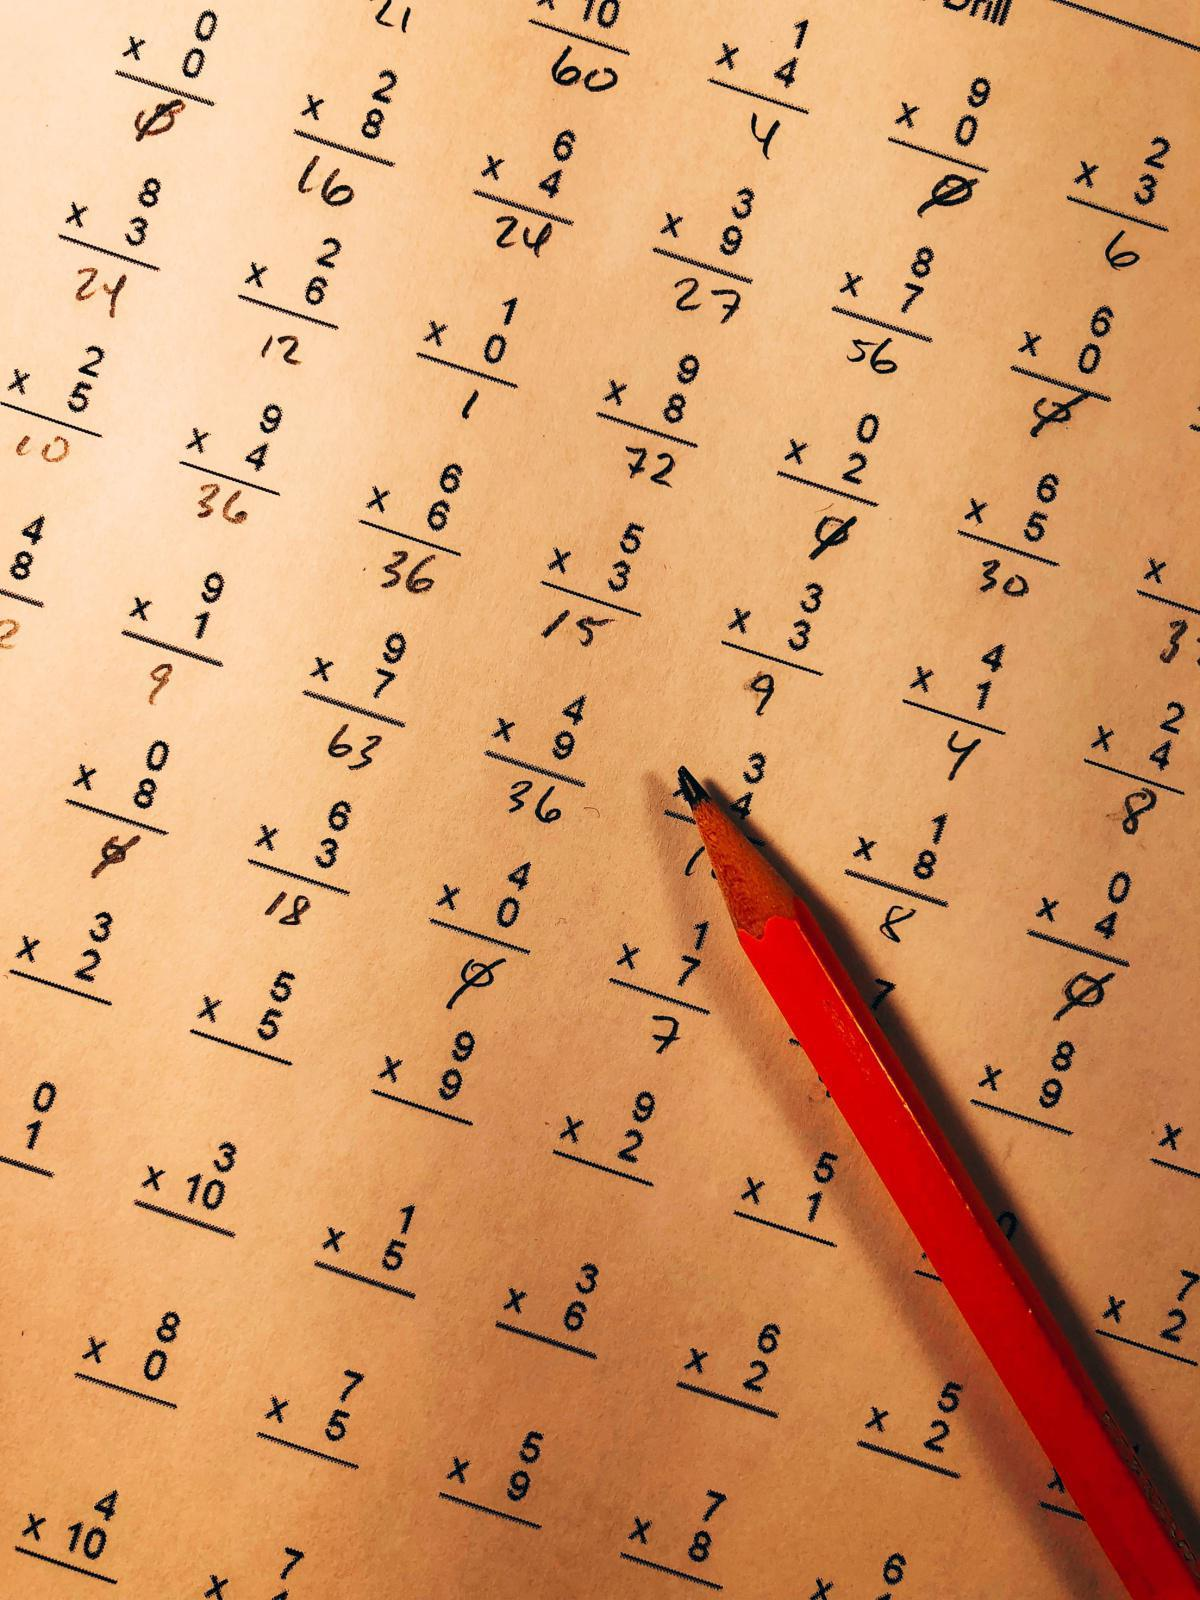 Ask Brian: My son is struggling with primary school maths. How can I help?